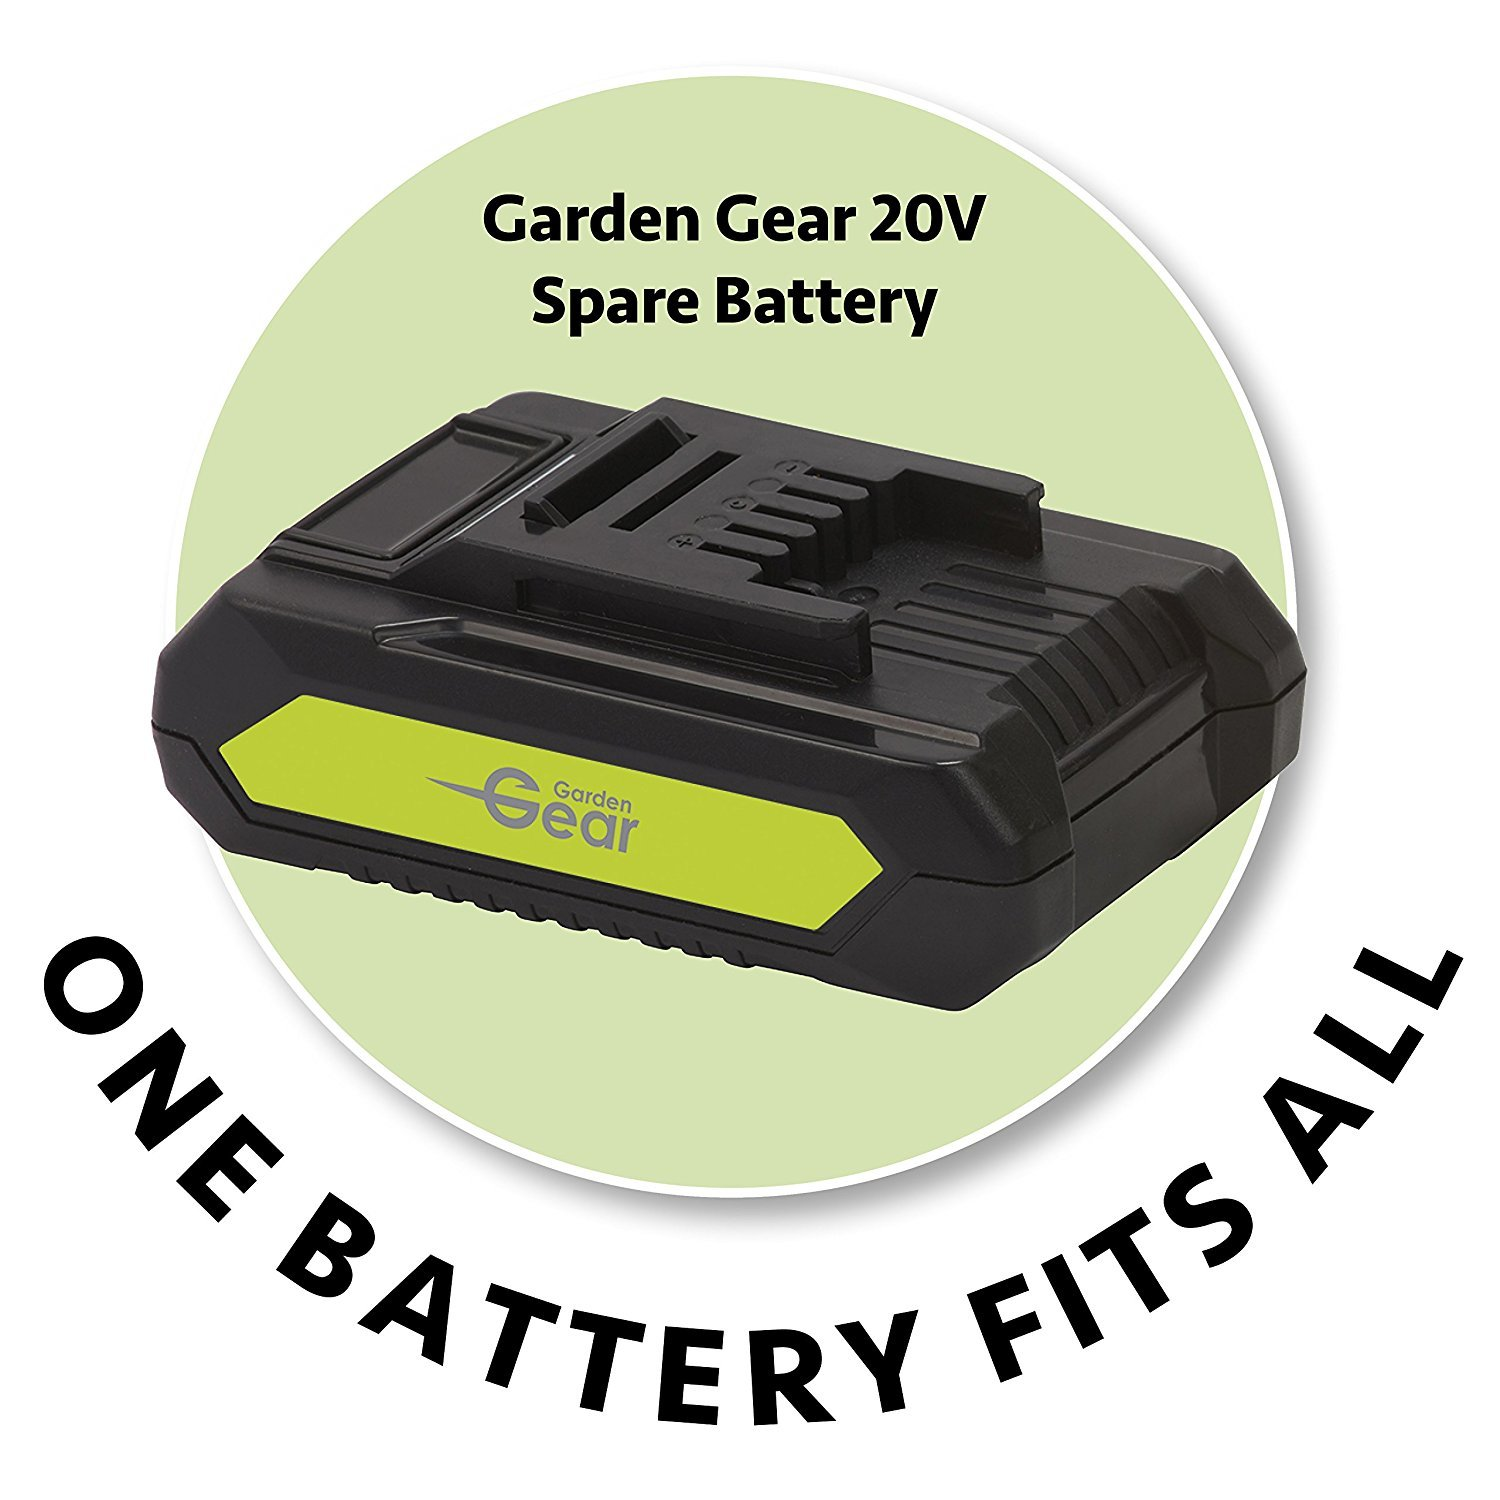 Garden Gear 20V Cordless Spare Battery Clifford James